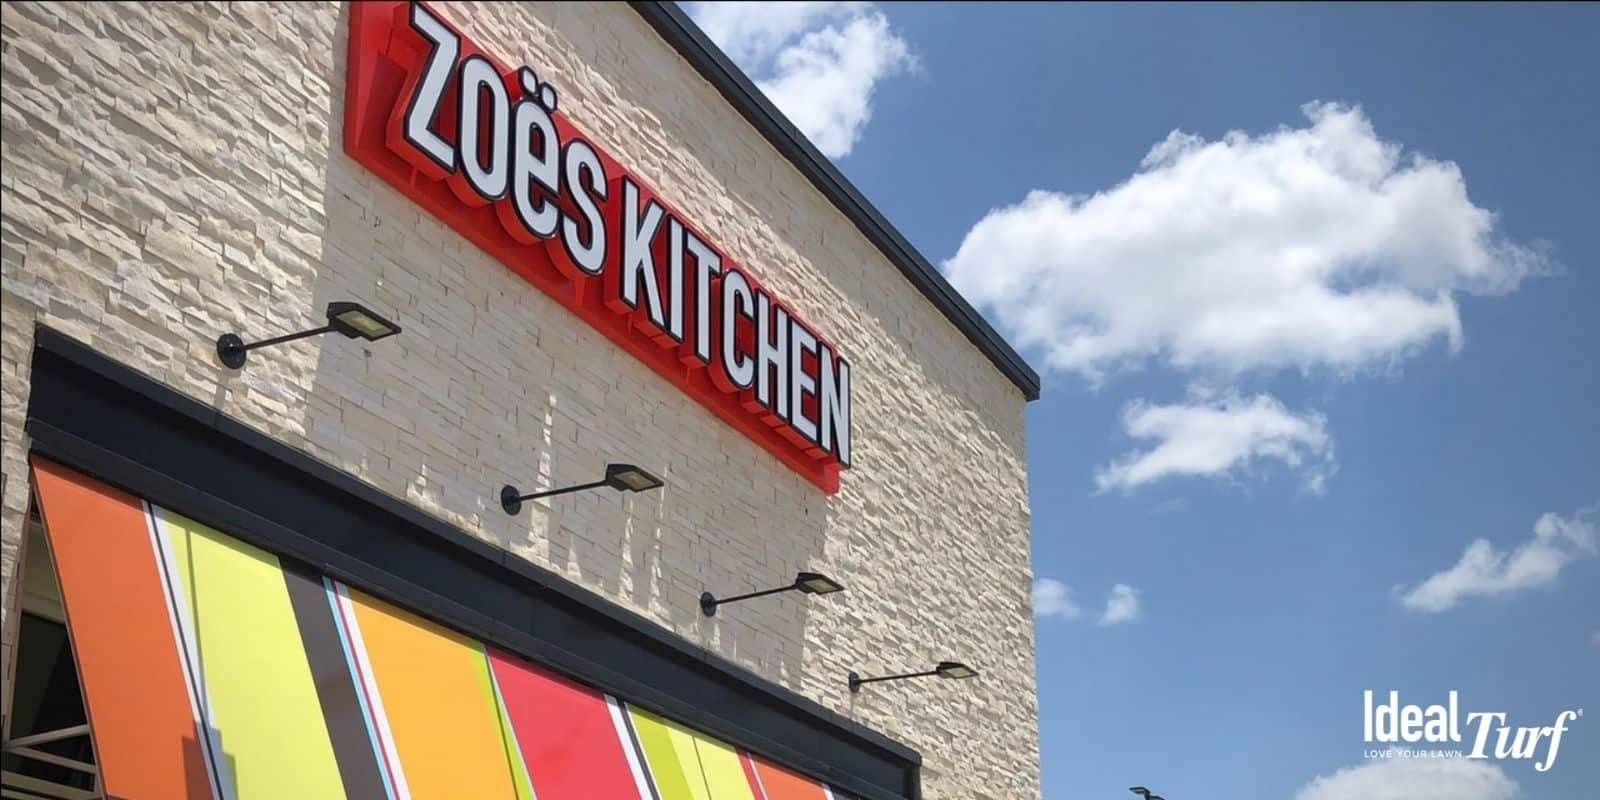 Picture of Zoe's Kitchen sign over multi-colored awning